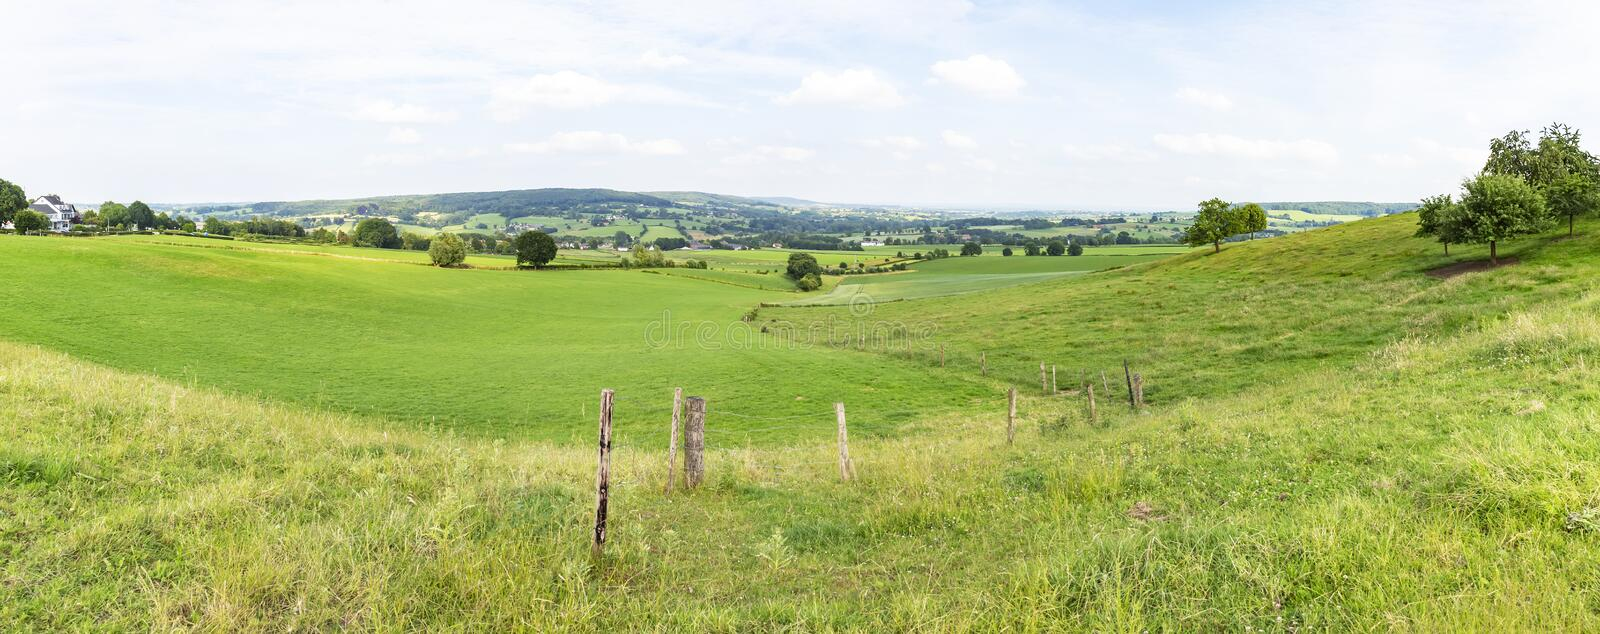 Panorama of South Limburg hilly landscape near Epen stock photos